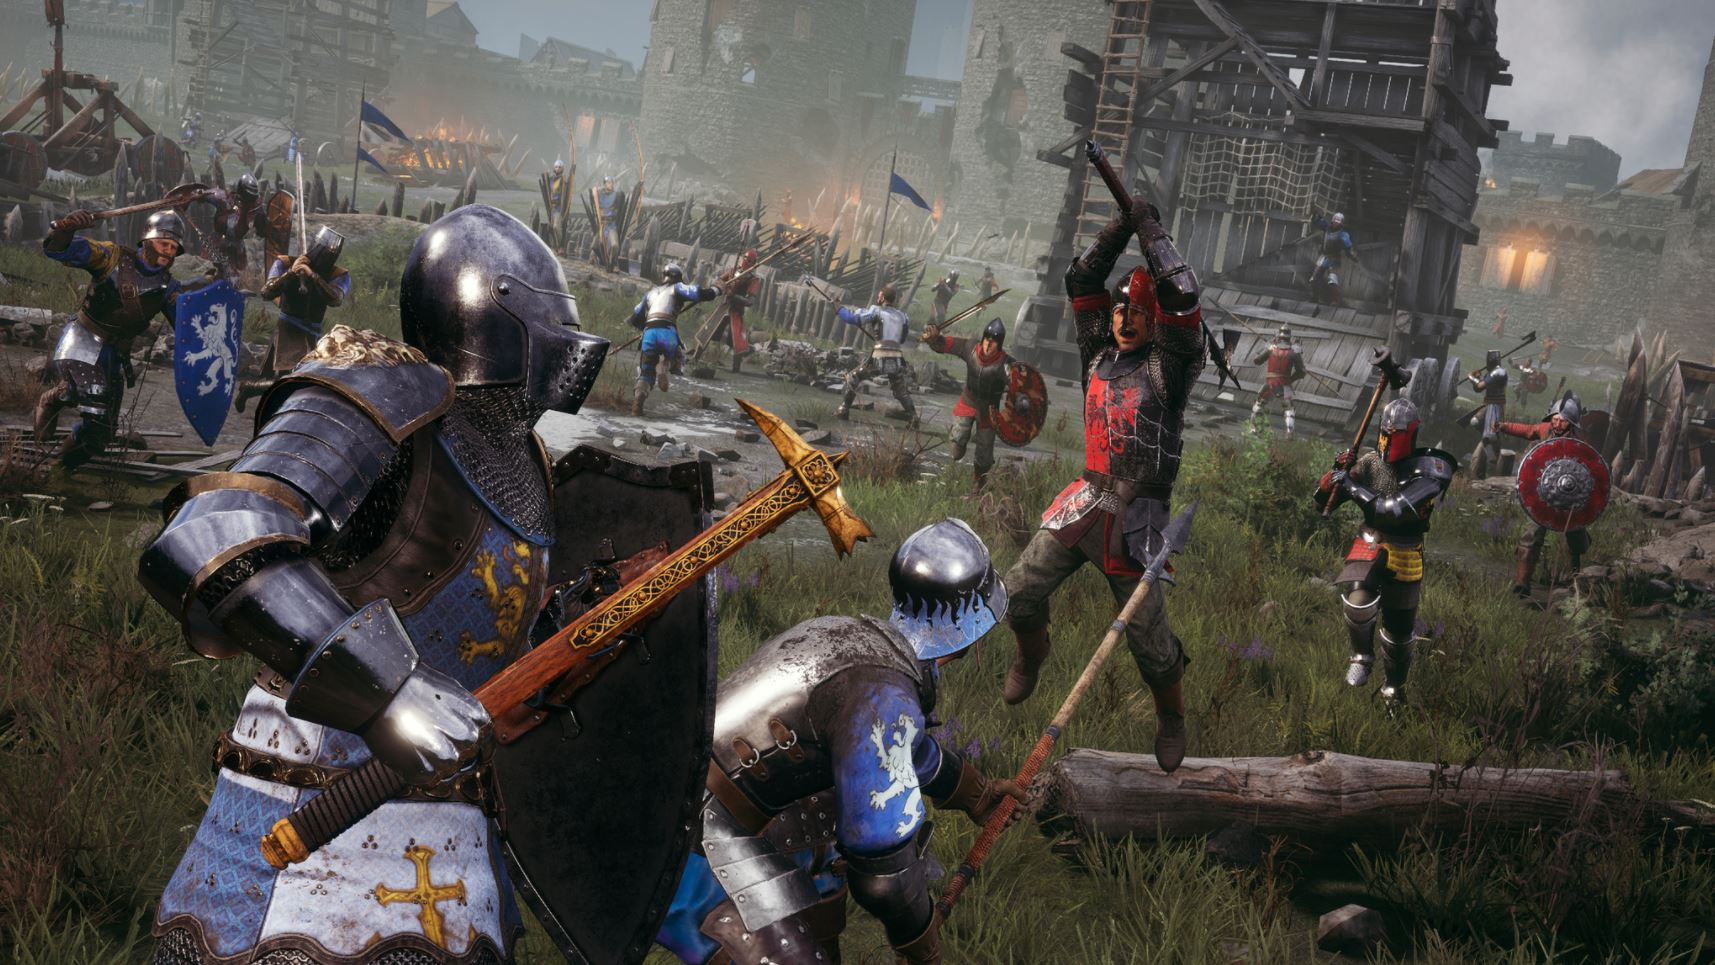 chivalry-2-hands-on-impressions-ps5-ps4-a-wild-wacky-and-entertaining-multiplayer-medieval-fighter-2